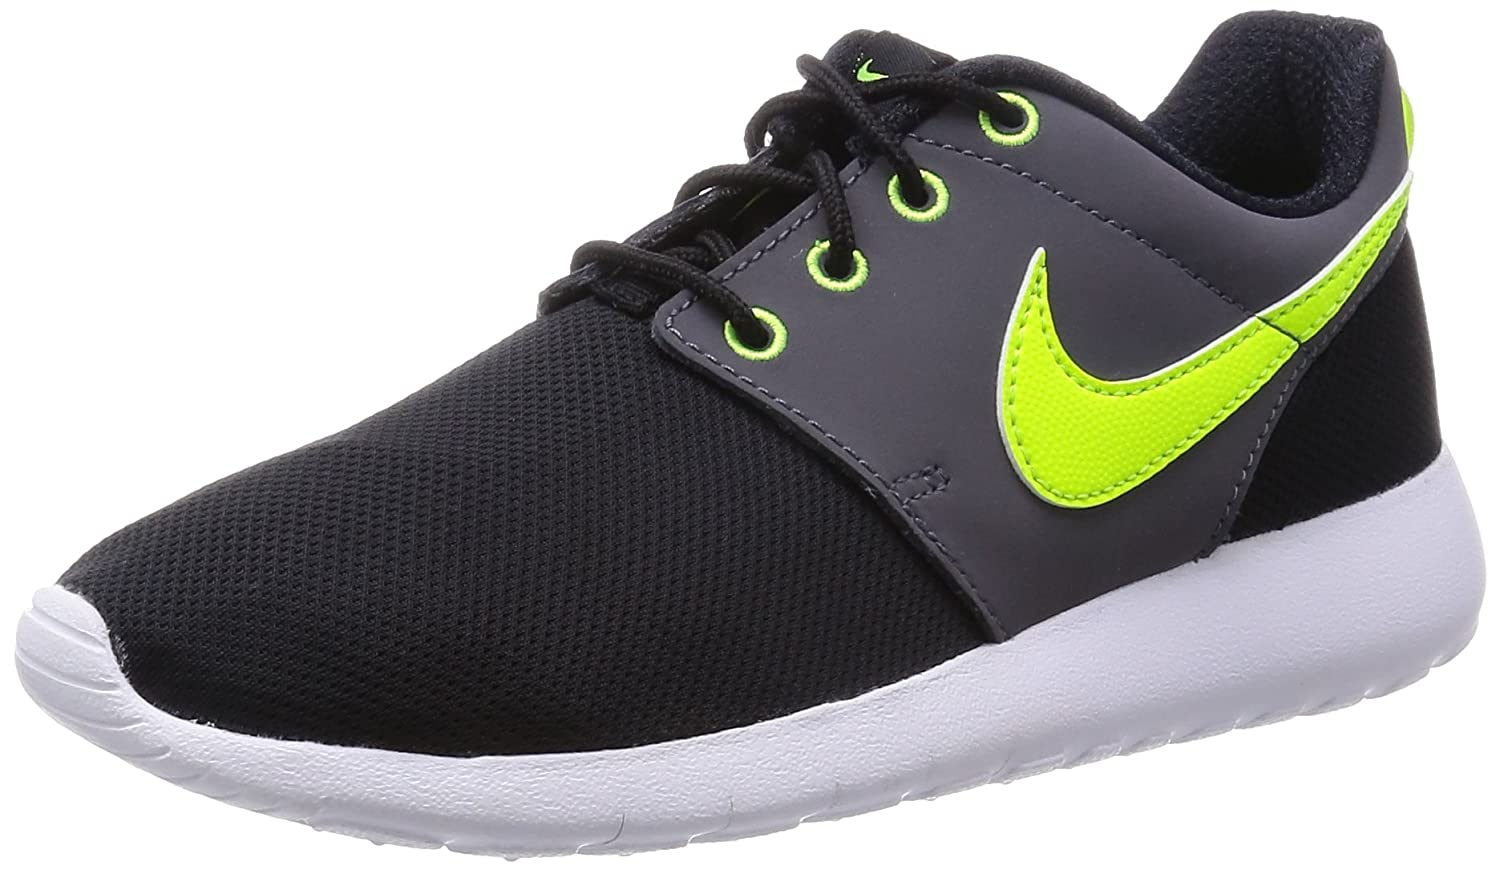 331ac0452088 Nike Roshe One (GS) Unisex Kids  Outdoor Shoes  Amazon.co.uk  Shoes   Bags